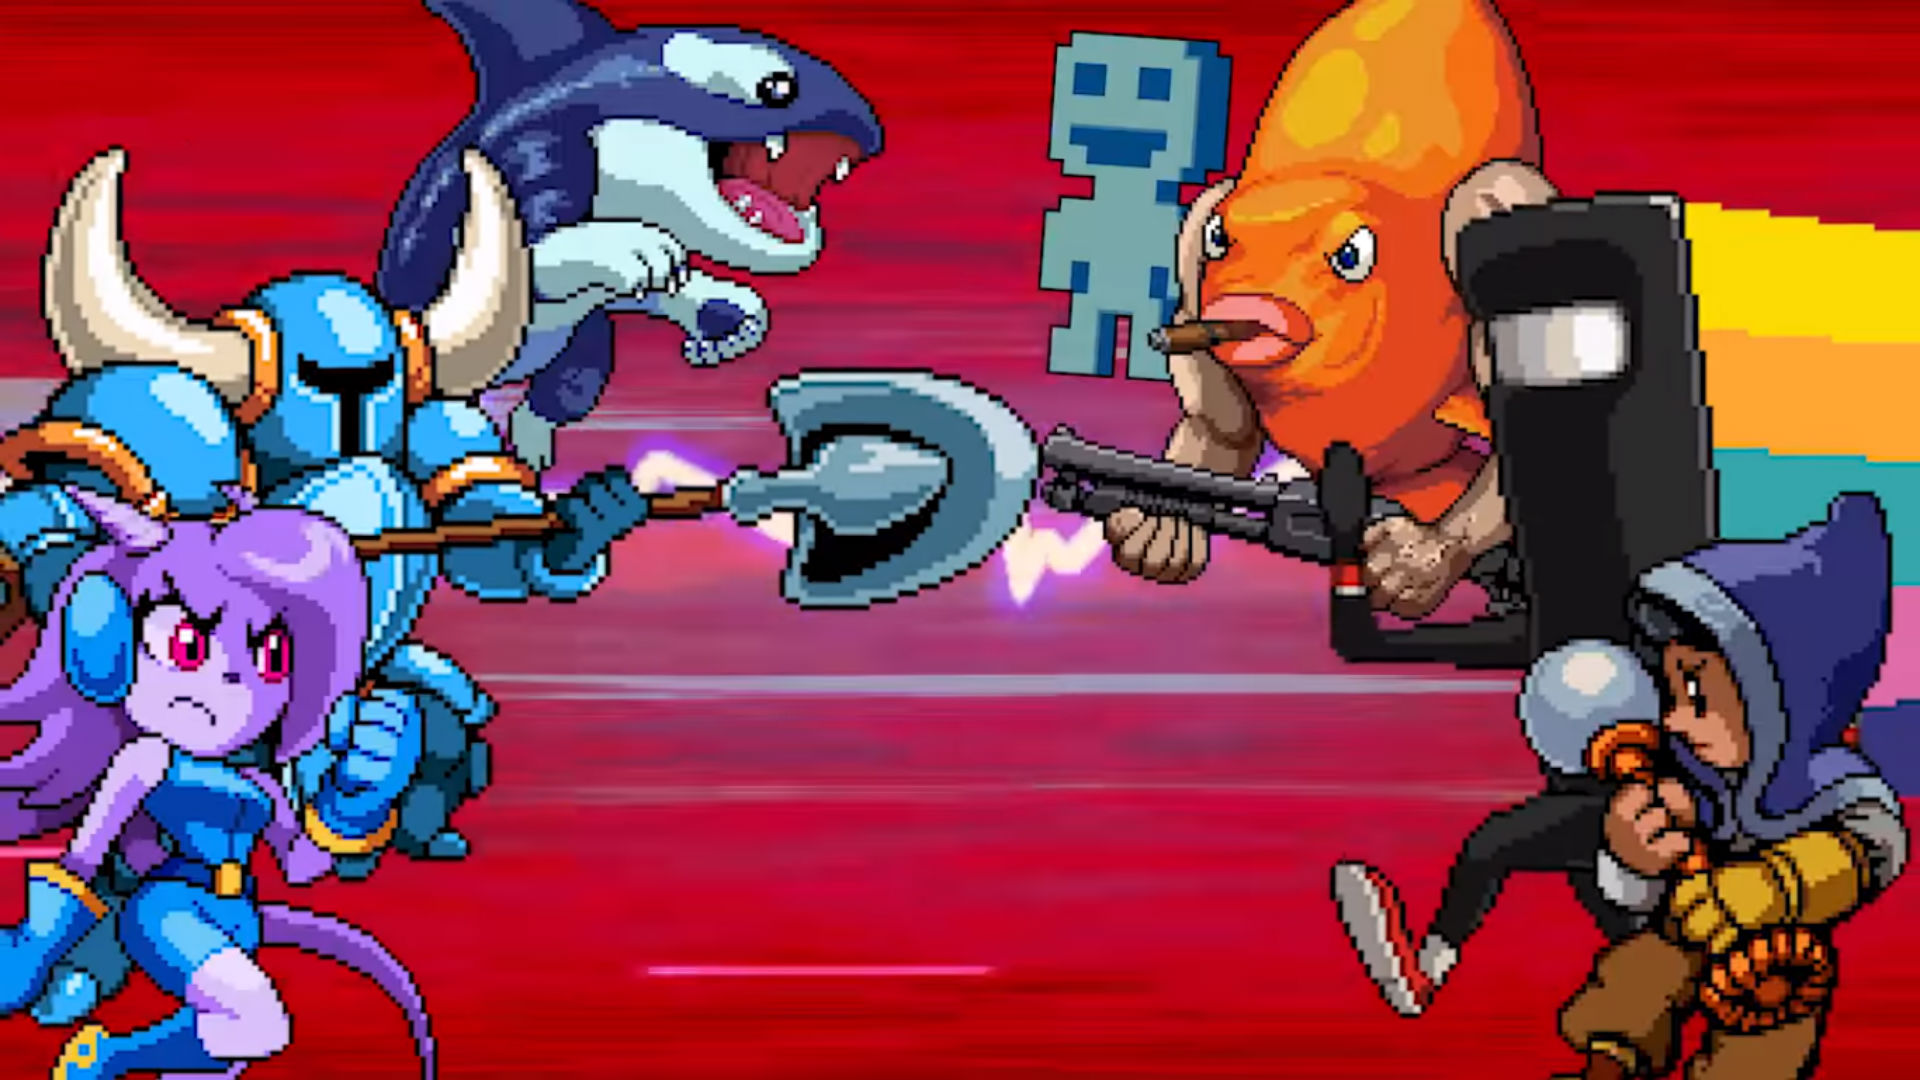 Adorable indie mascot fighter Indie Pogo will make you jump jump screenshot